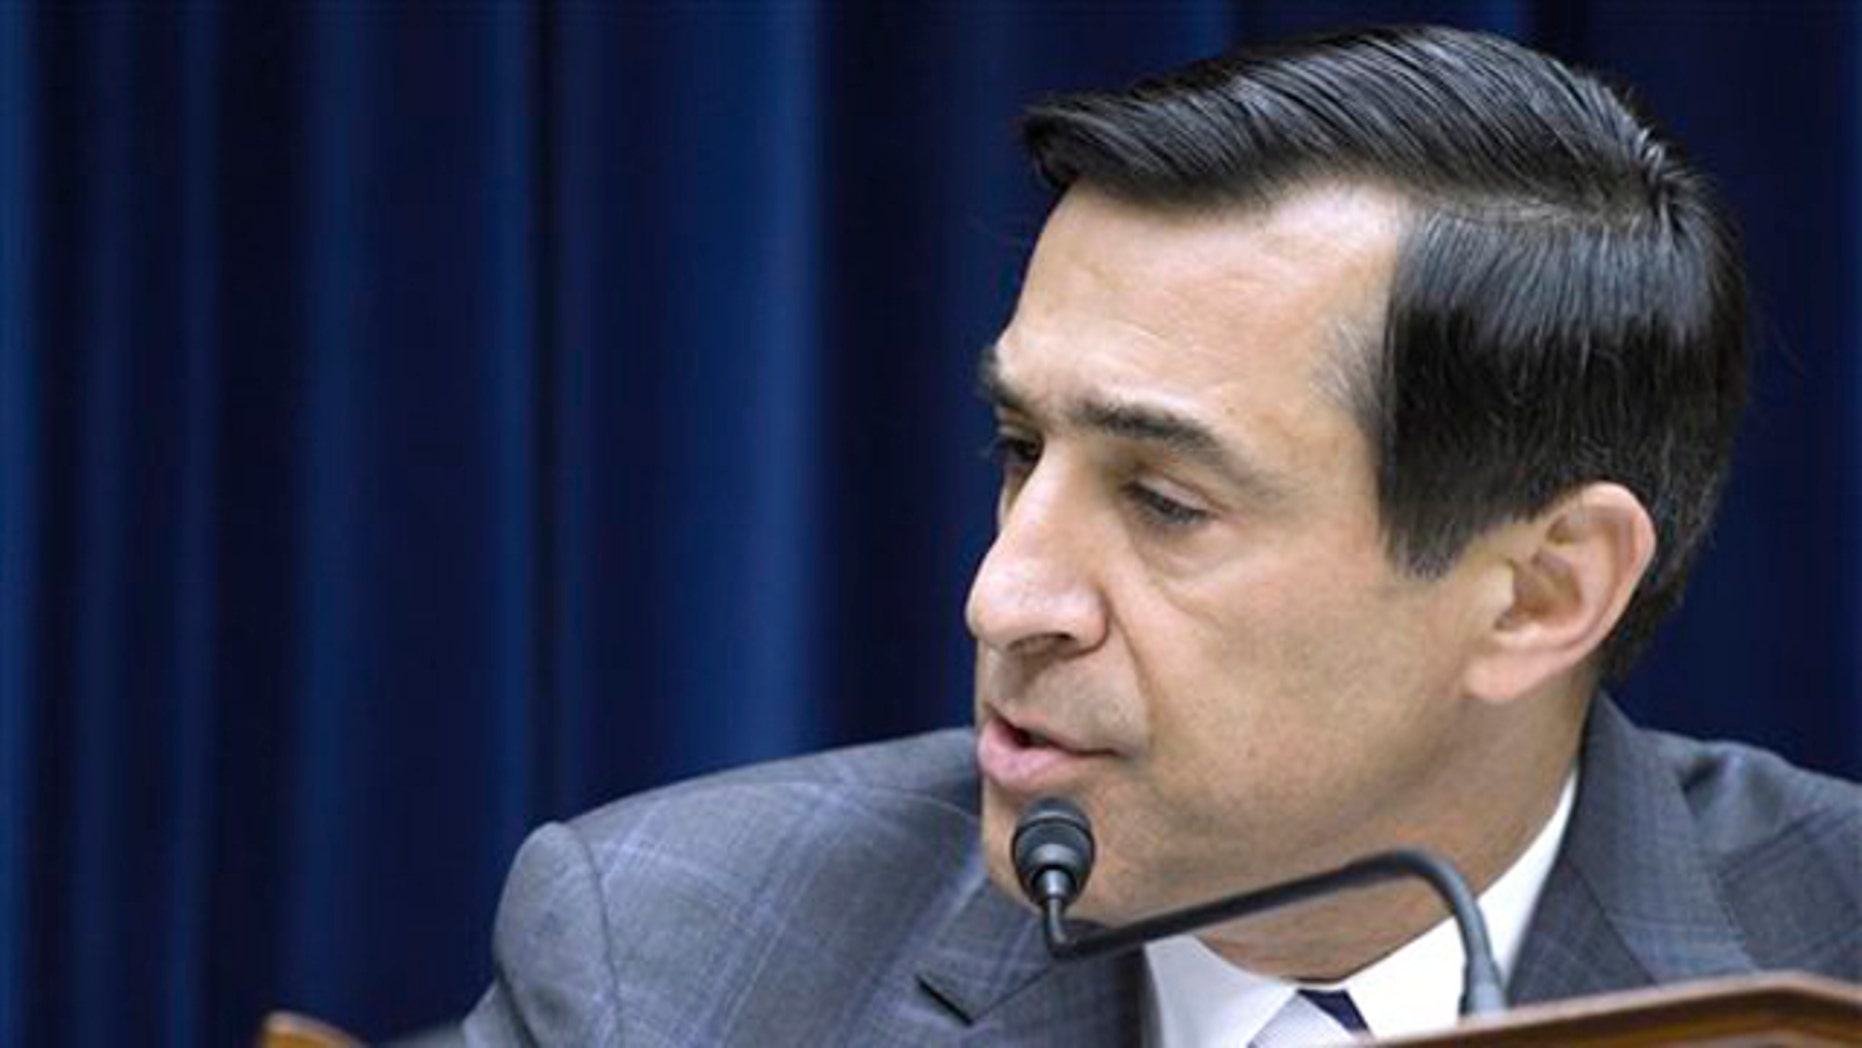 File: June 2, 2012:  House Oversight and Government Reform Committee Chairman Rep. Darrell Issa speaks on Capitol Hill.